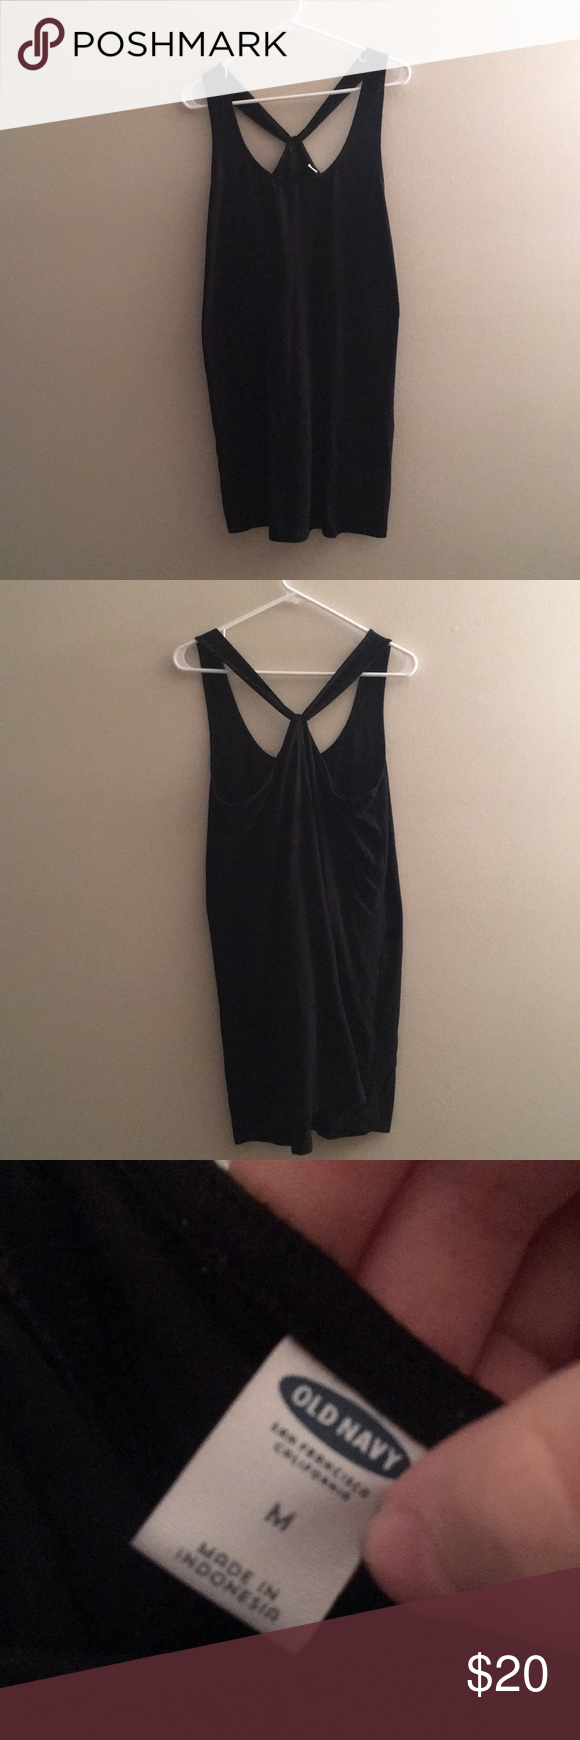 Black cotton summer dress summer dresses bathing suit covers and